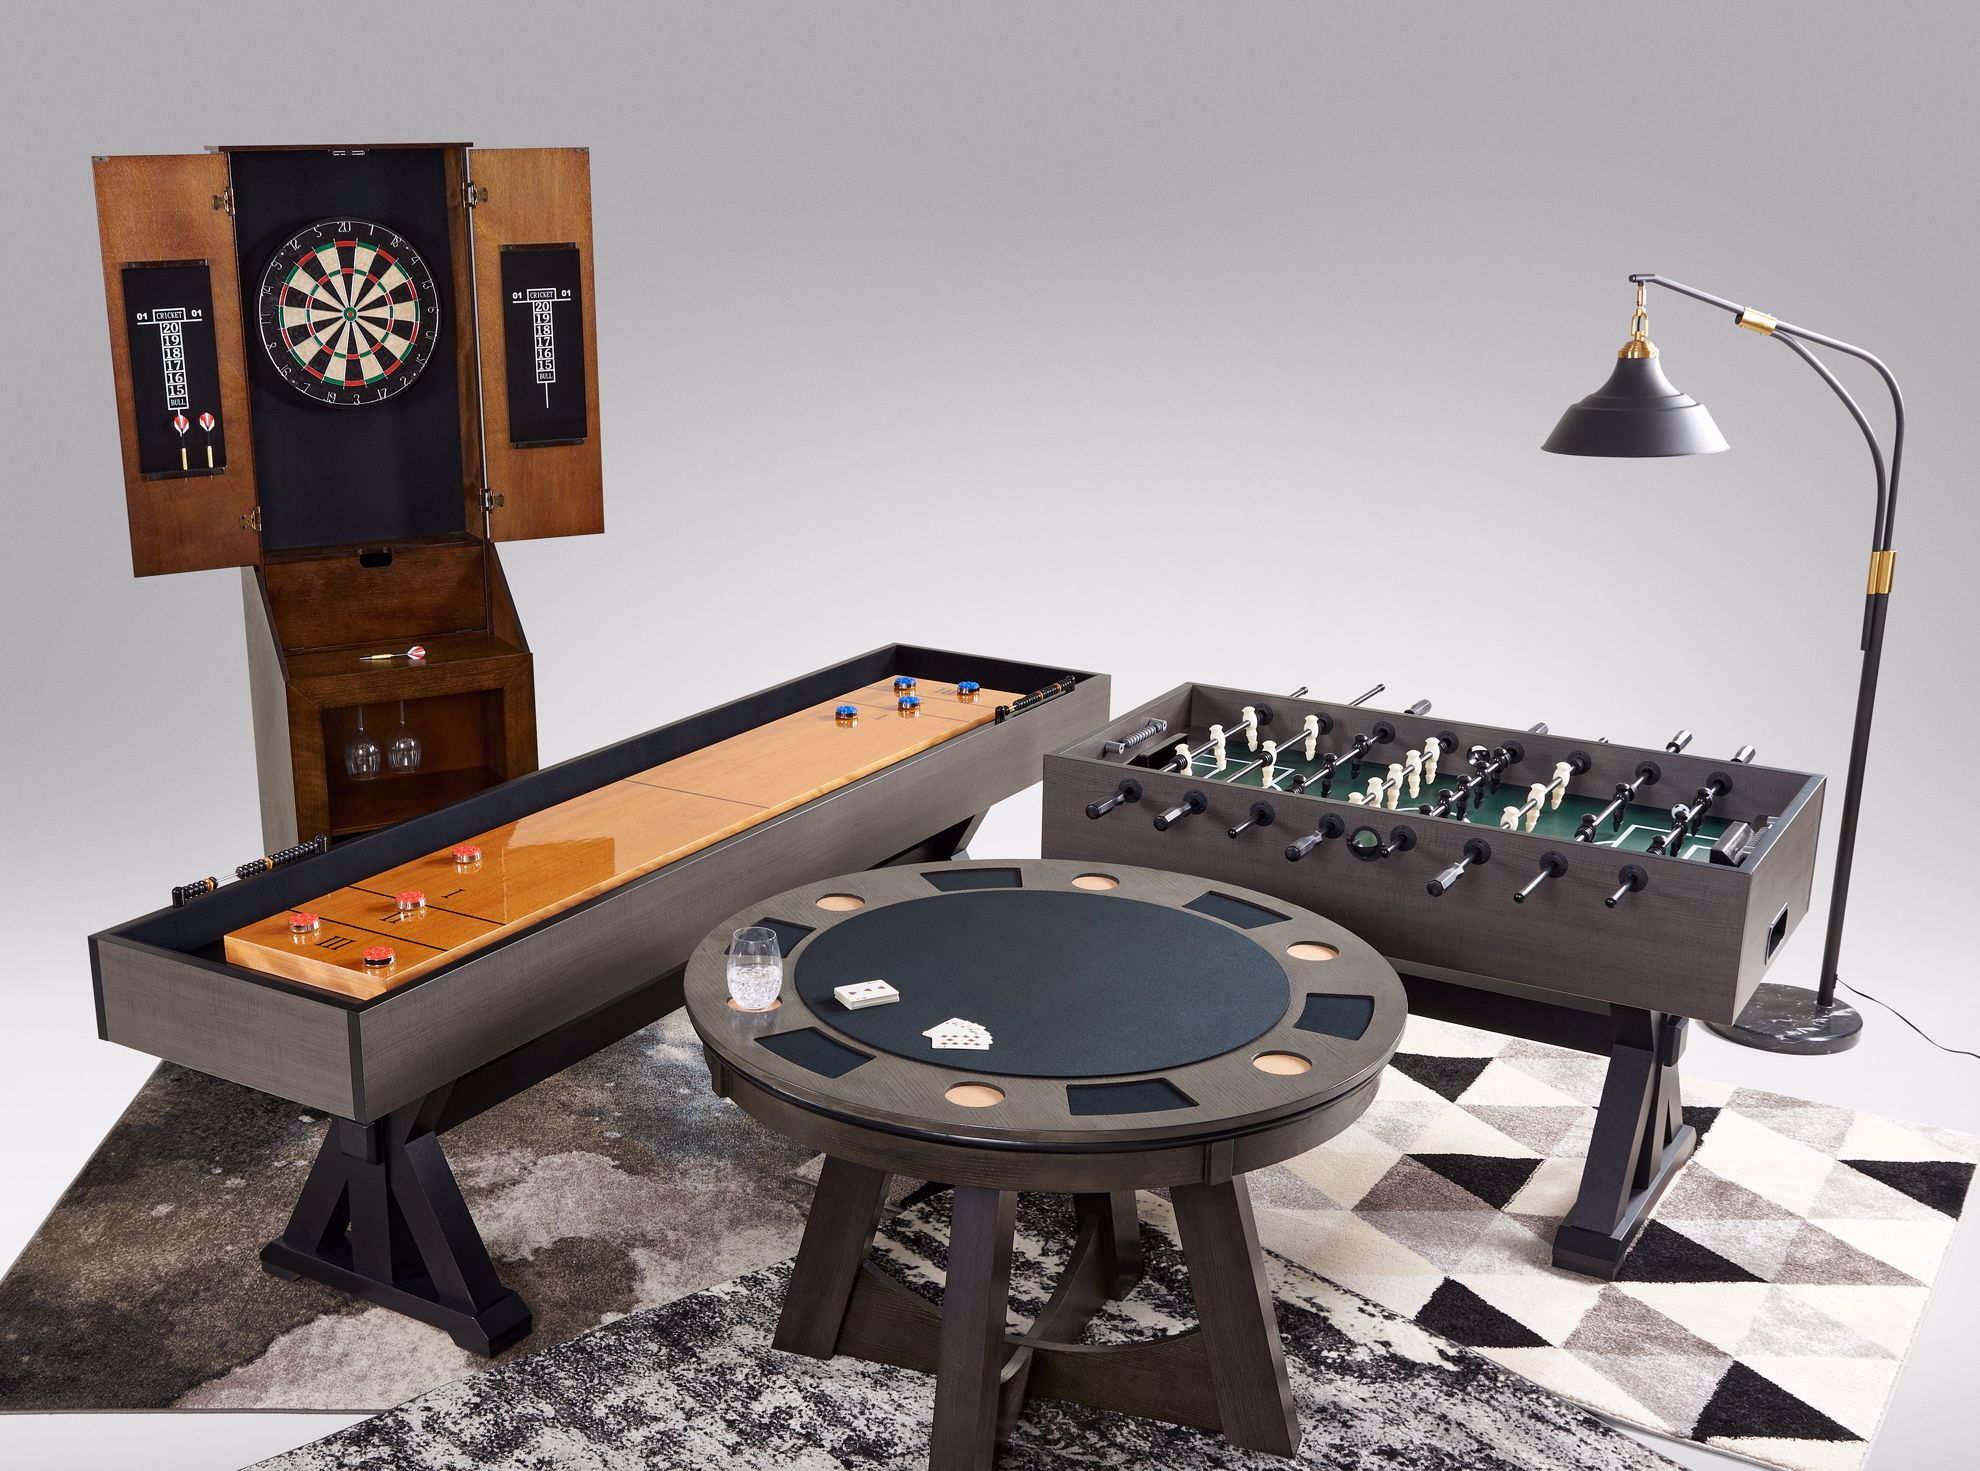 Picture of Hexter Shuffle Board Table